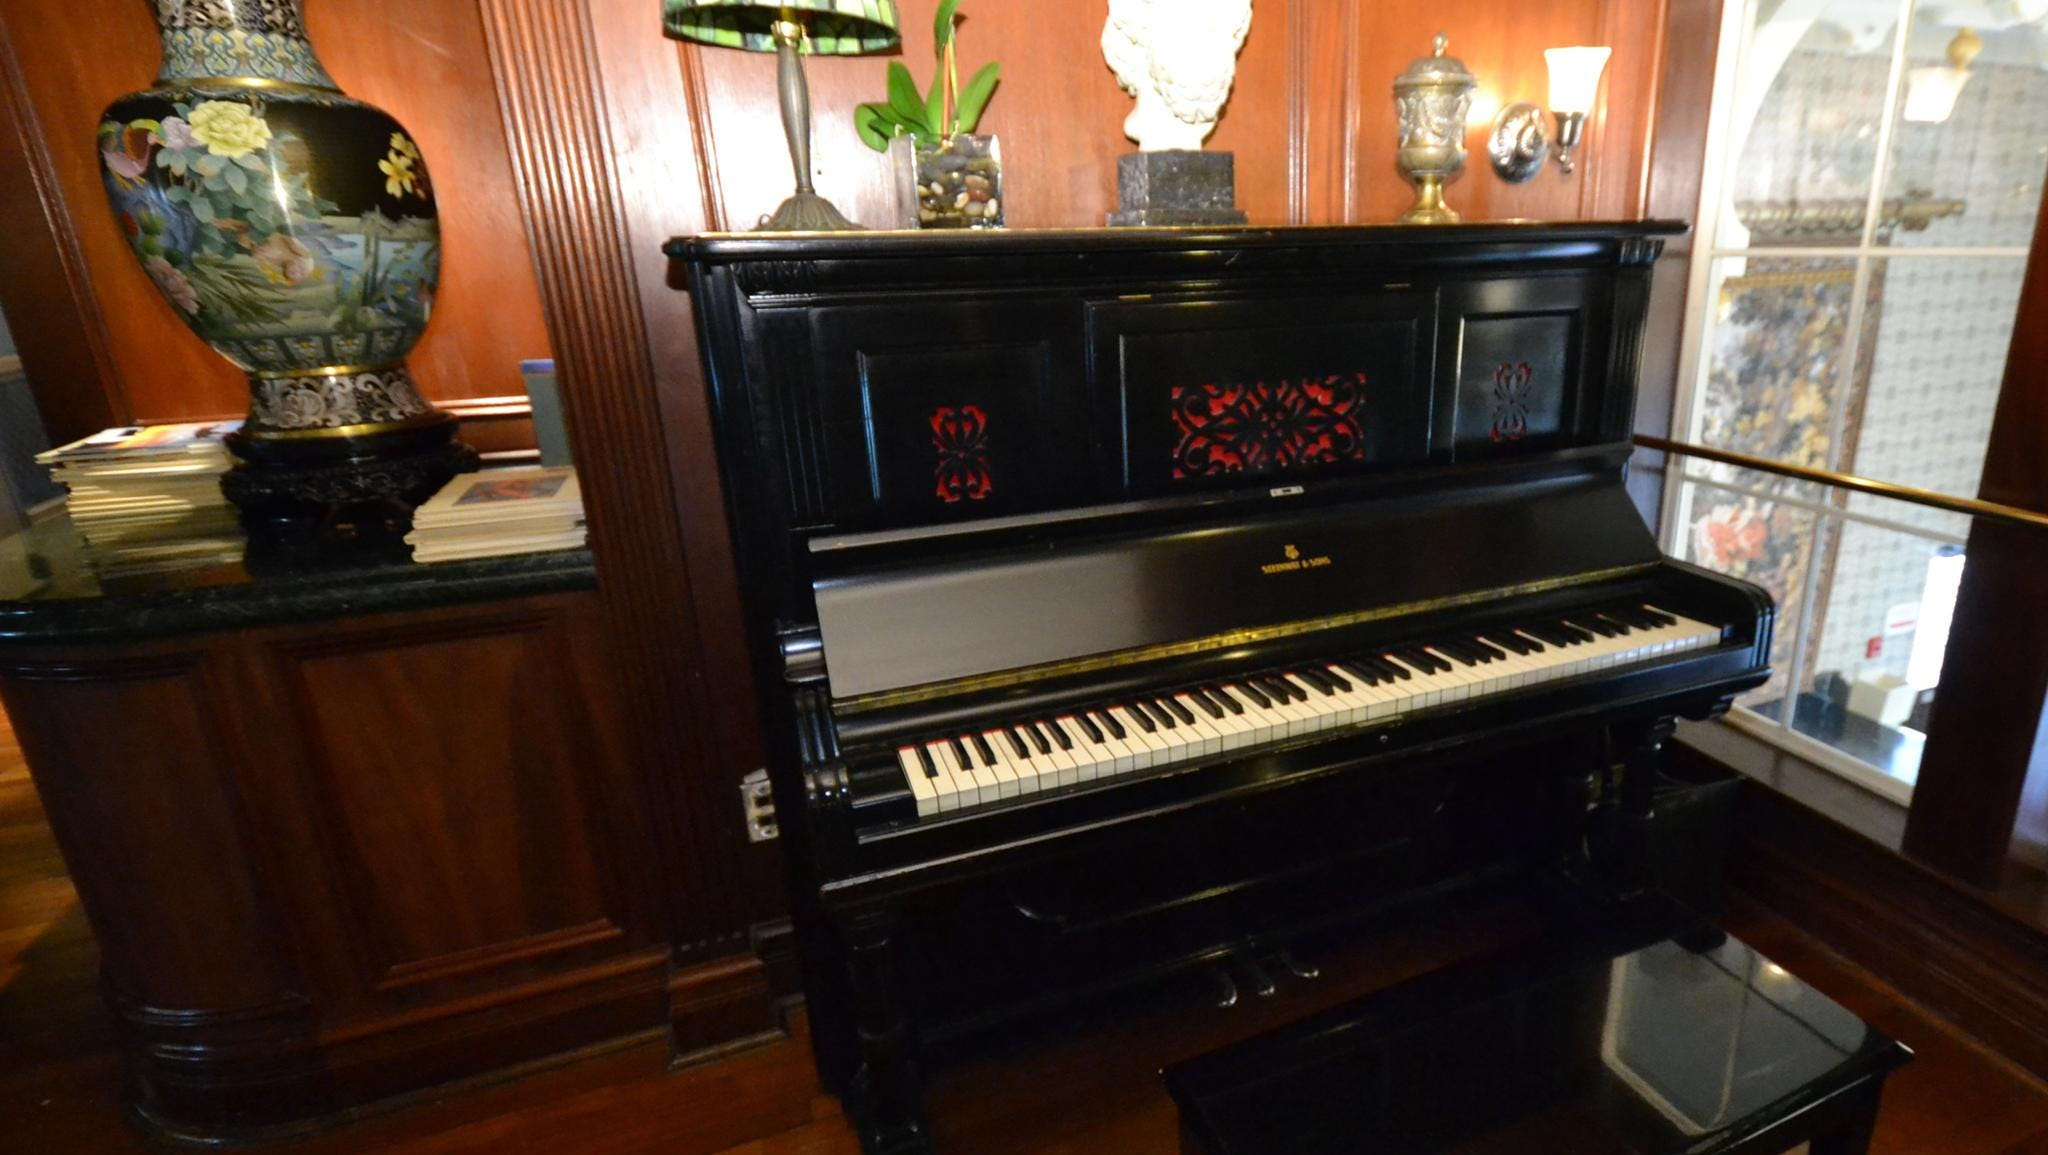 Passengers in the Mark Twain Gallery often are treated to live piano music played on this upright piano.